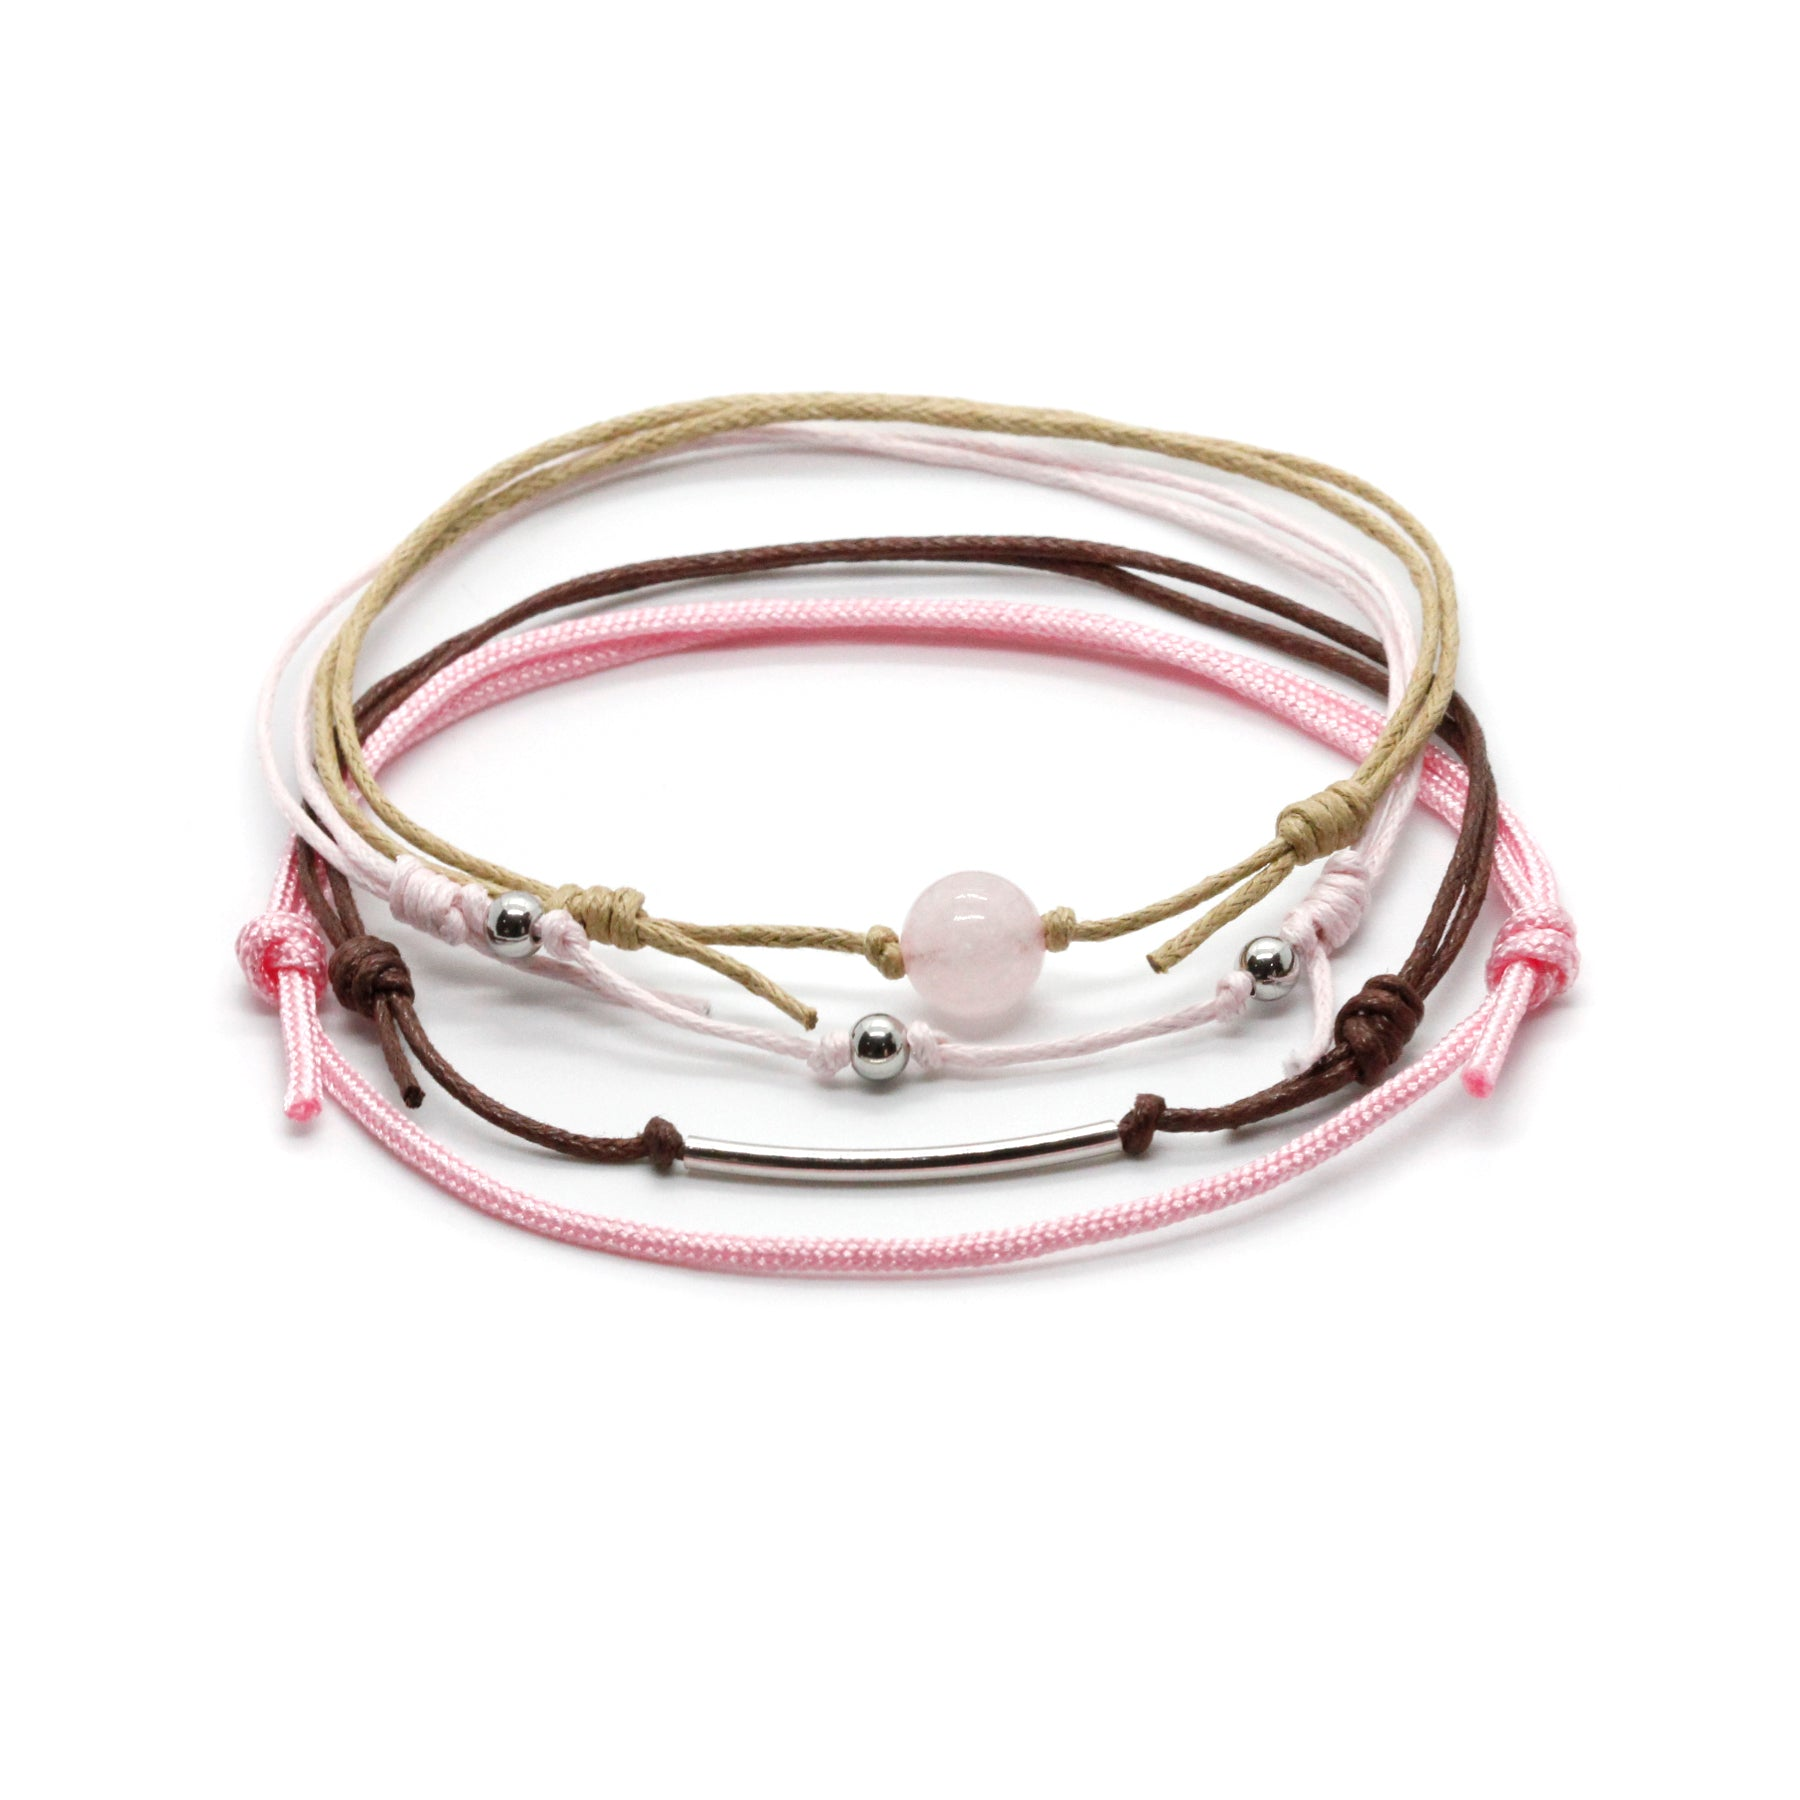 Rose Quartz Gemstone Anklet - 4 Piece Set - O YEAH GIFTS